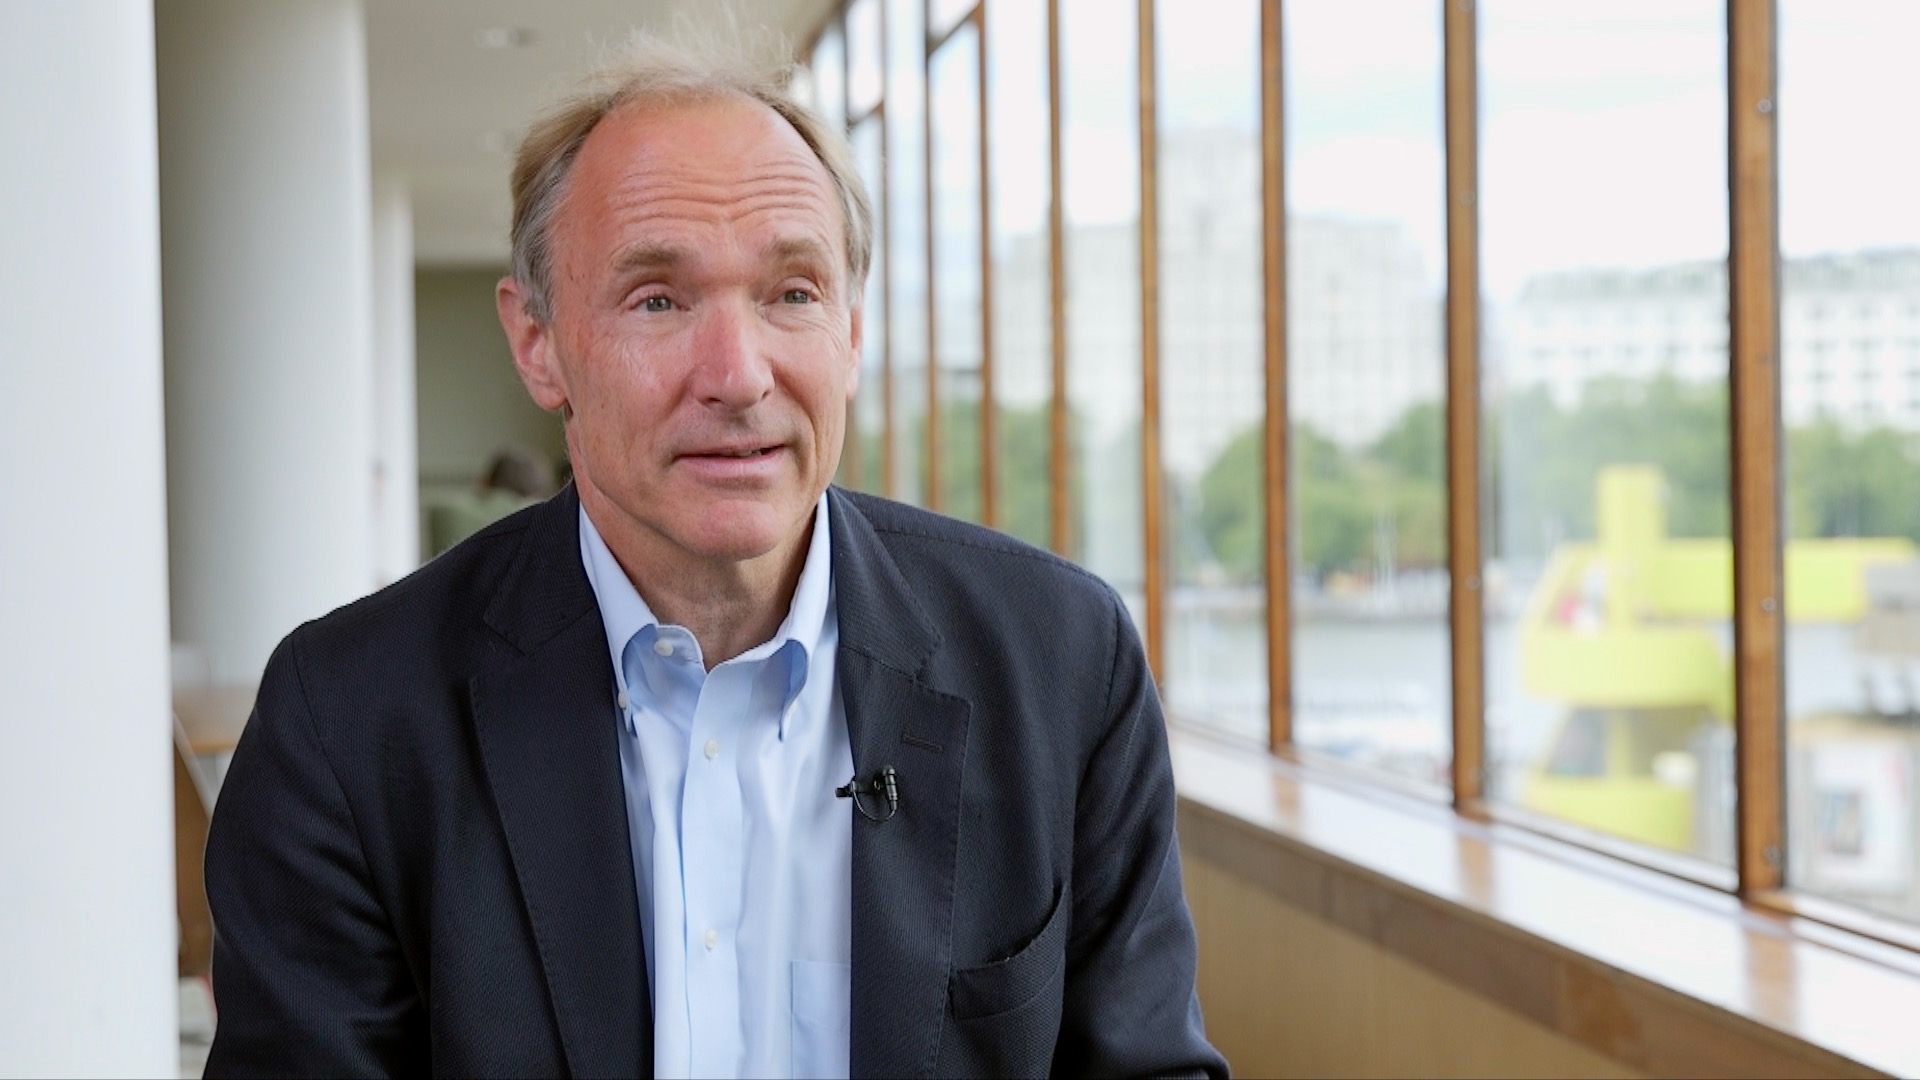 Sir Tim Berners-Lee speaks in a video for the British Library's project, Magna Carta: My Digital Rights.